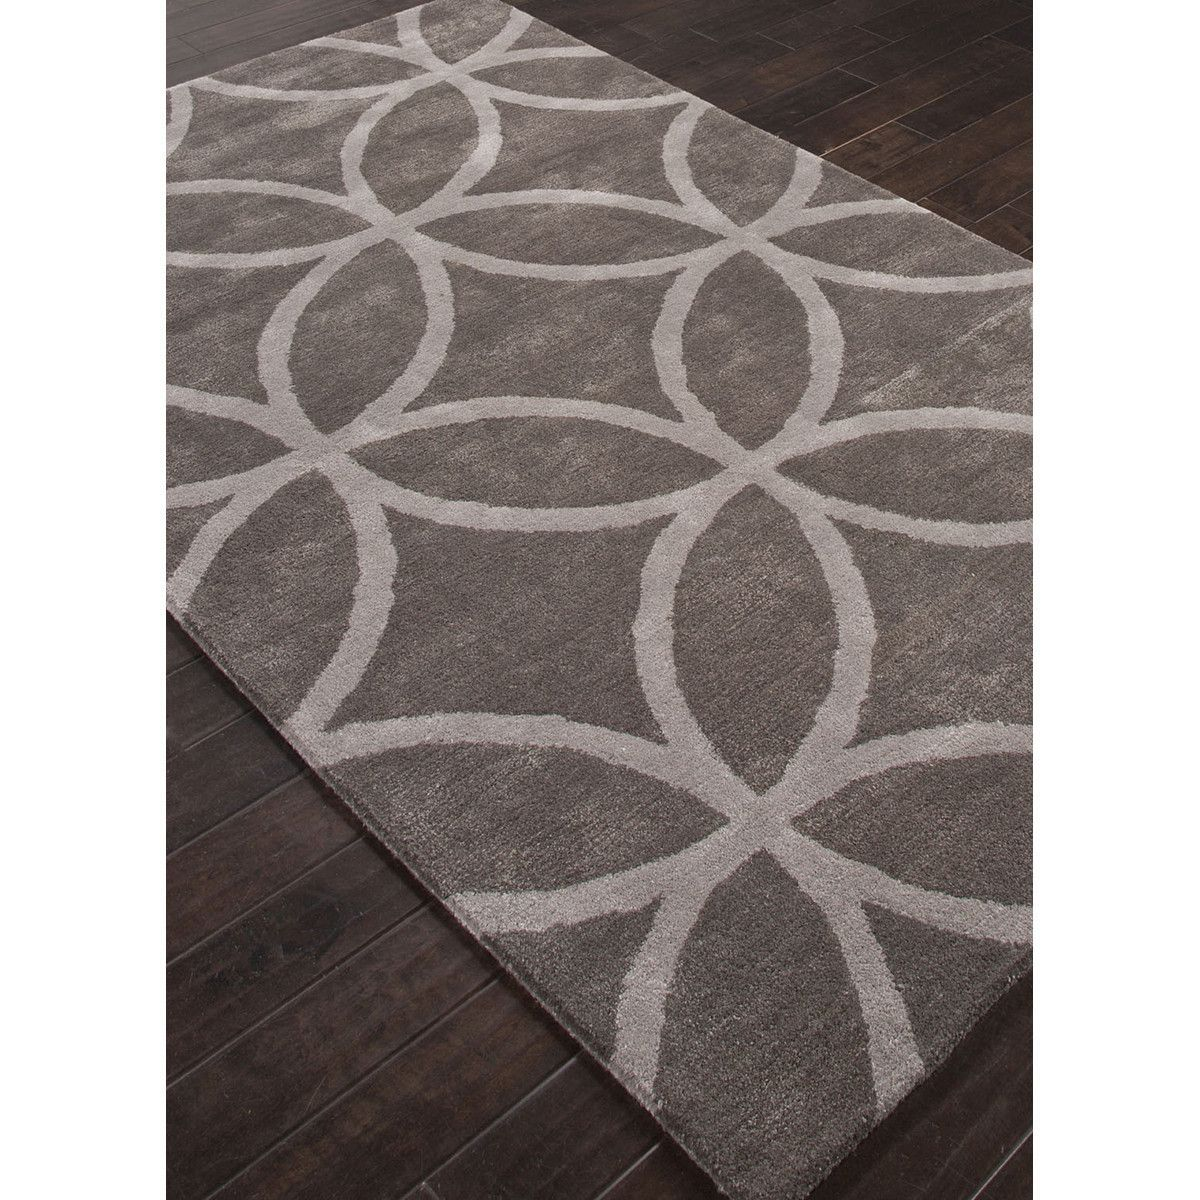 Black Grey City Austin Ct54 Area Rugs Online In Usa At Best Prices